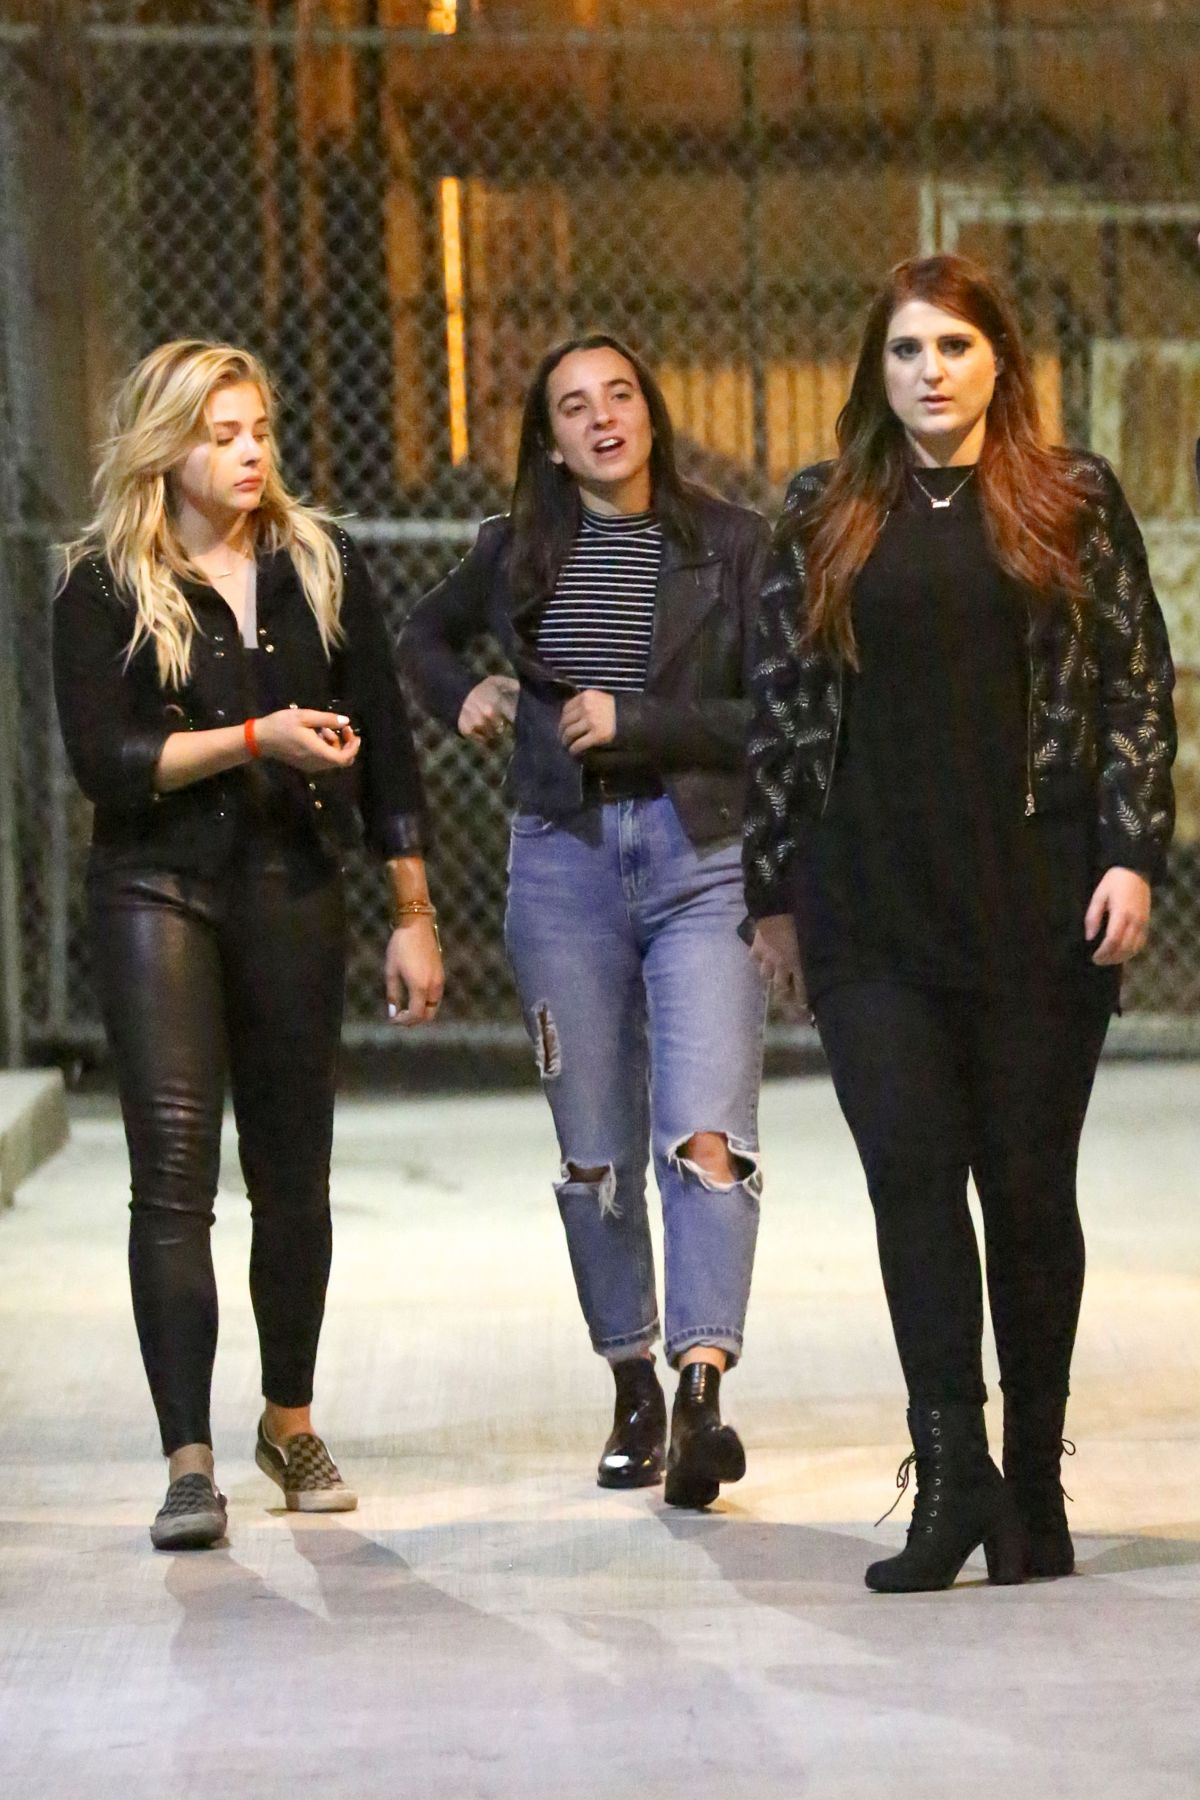 c7ef5e159f Chloe Moretz At The Warwick Nightclub In Hollywood - Celebzz